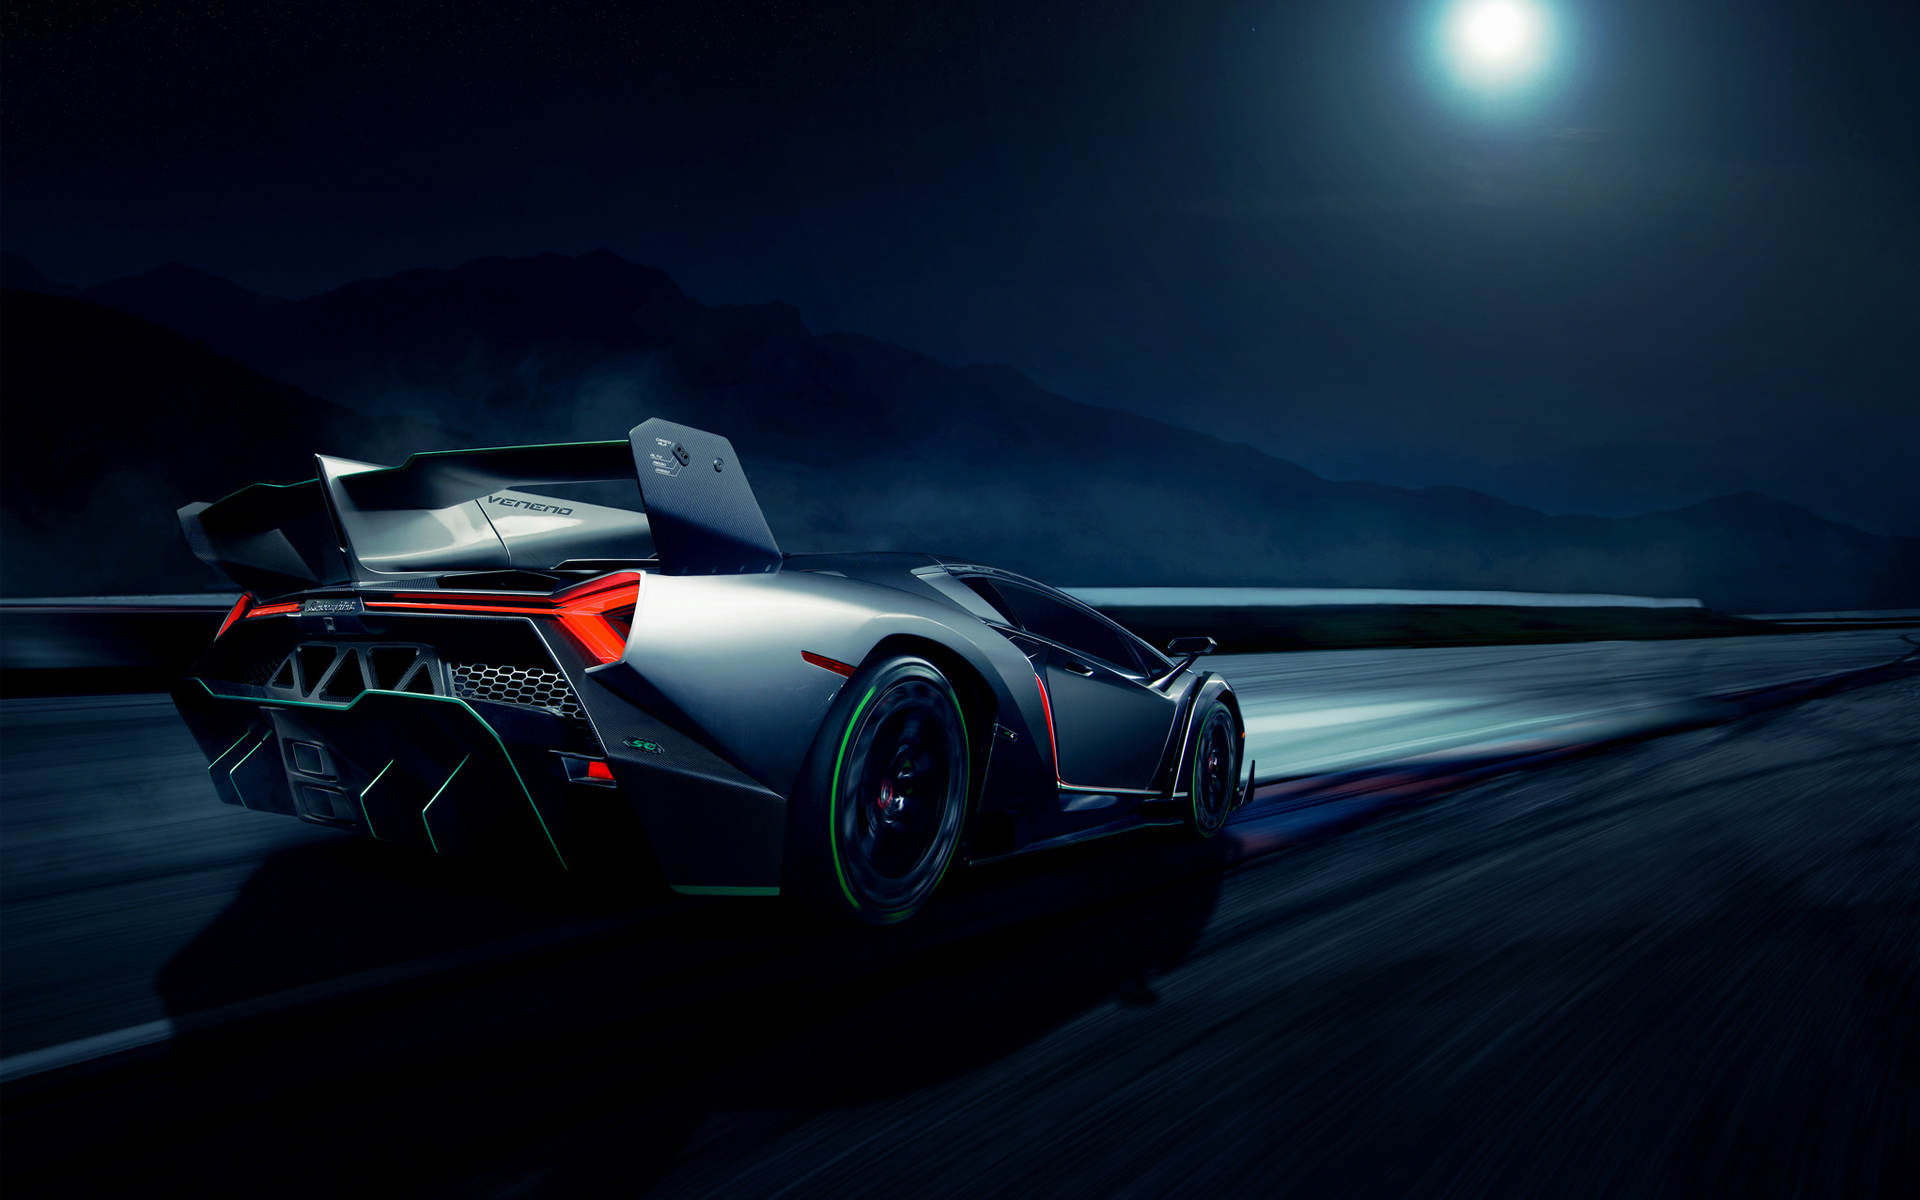 Supercar Hd Wallpaper: Lamborghini Veneno Supercar 2 Wallpaper